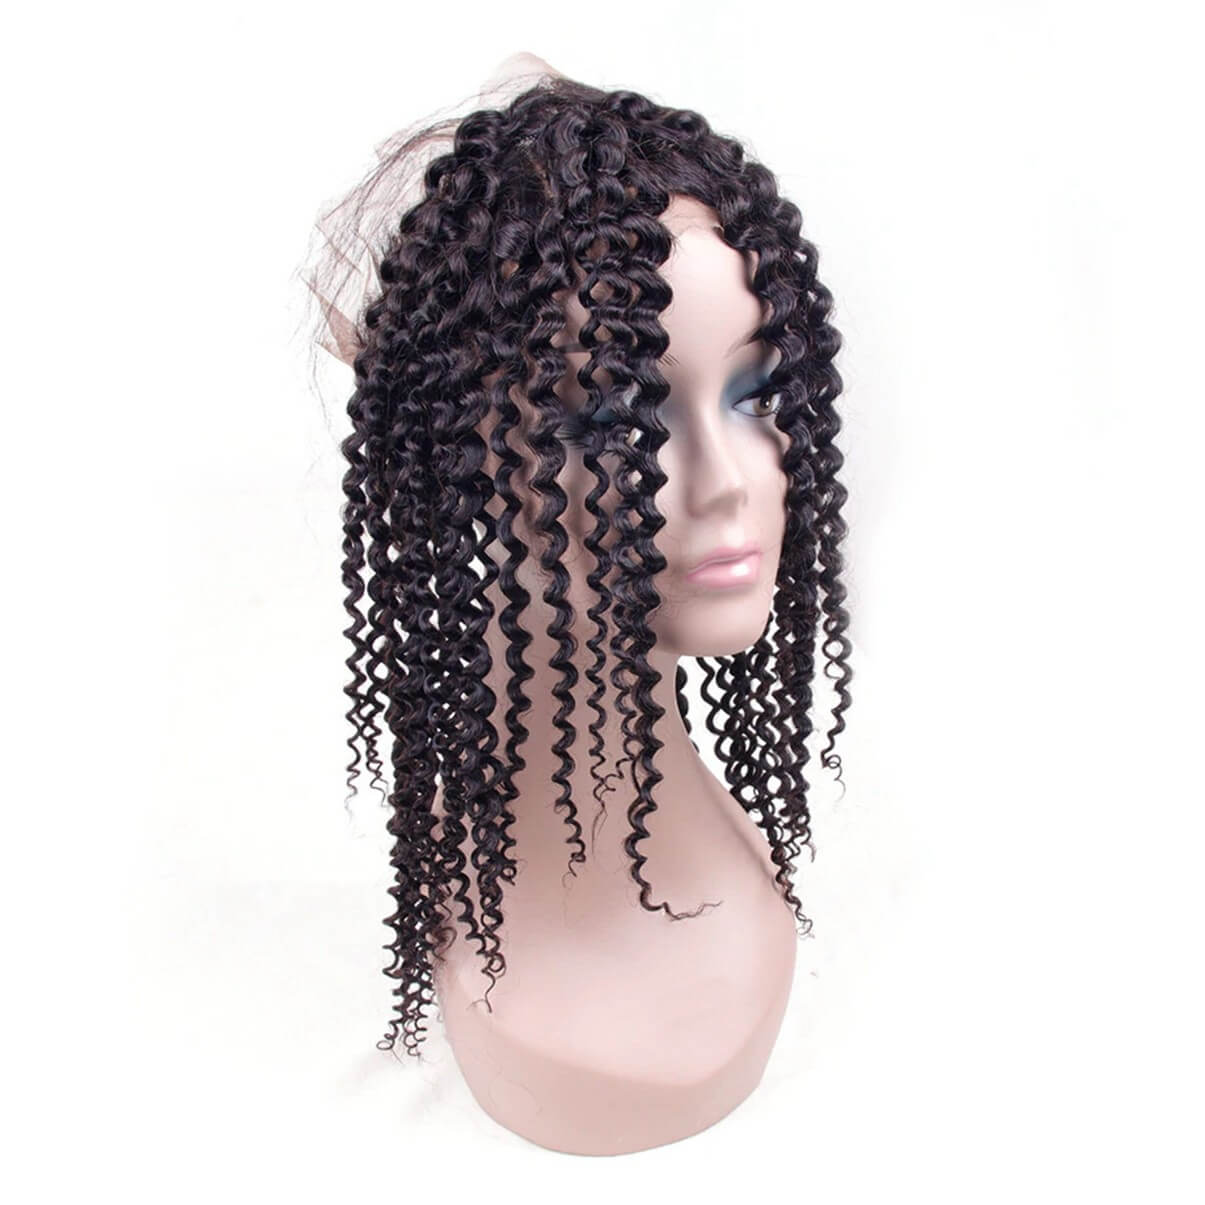 Lakihair Brazilian Kinky Curly 360 Lace Frontal Closure Virgin Human Hair Frontal